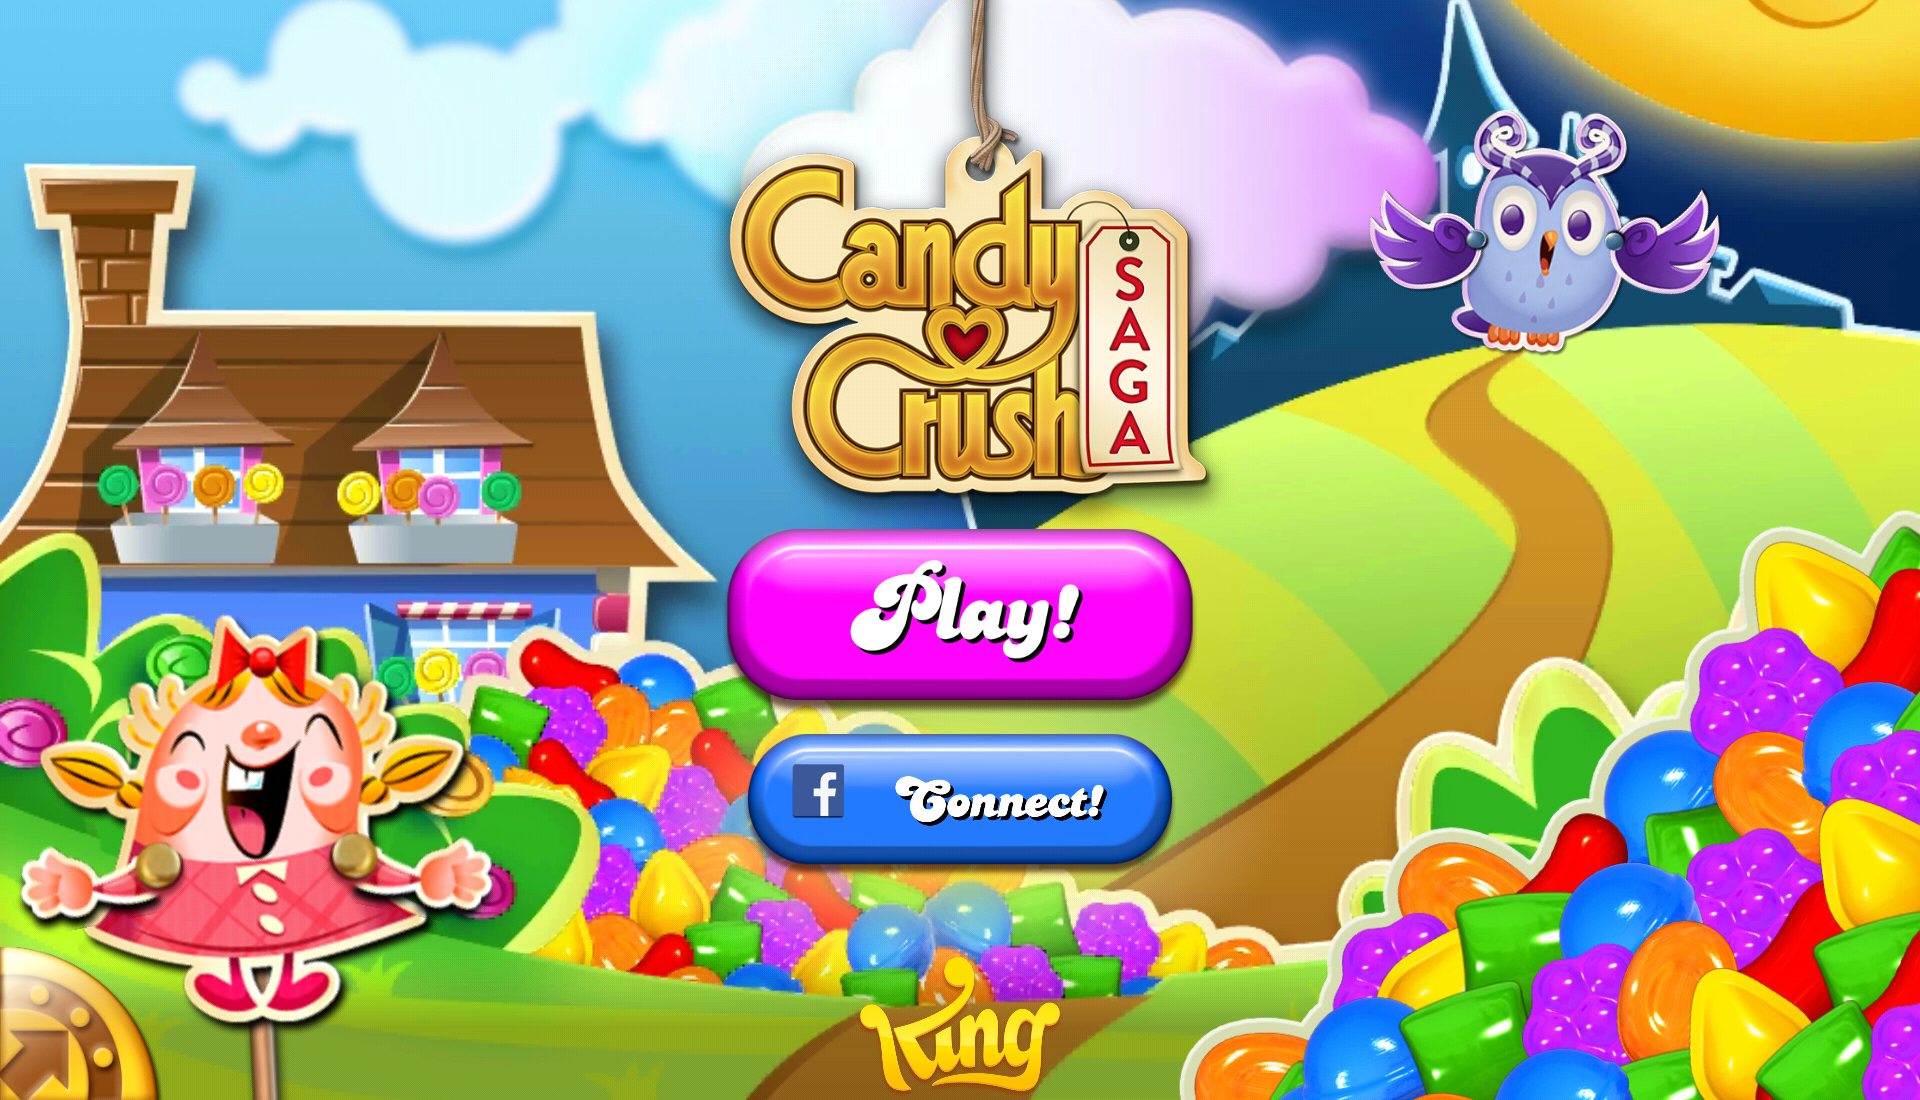 Interview: How Candy Crush Saga's art has evolved